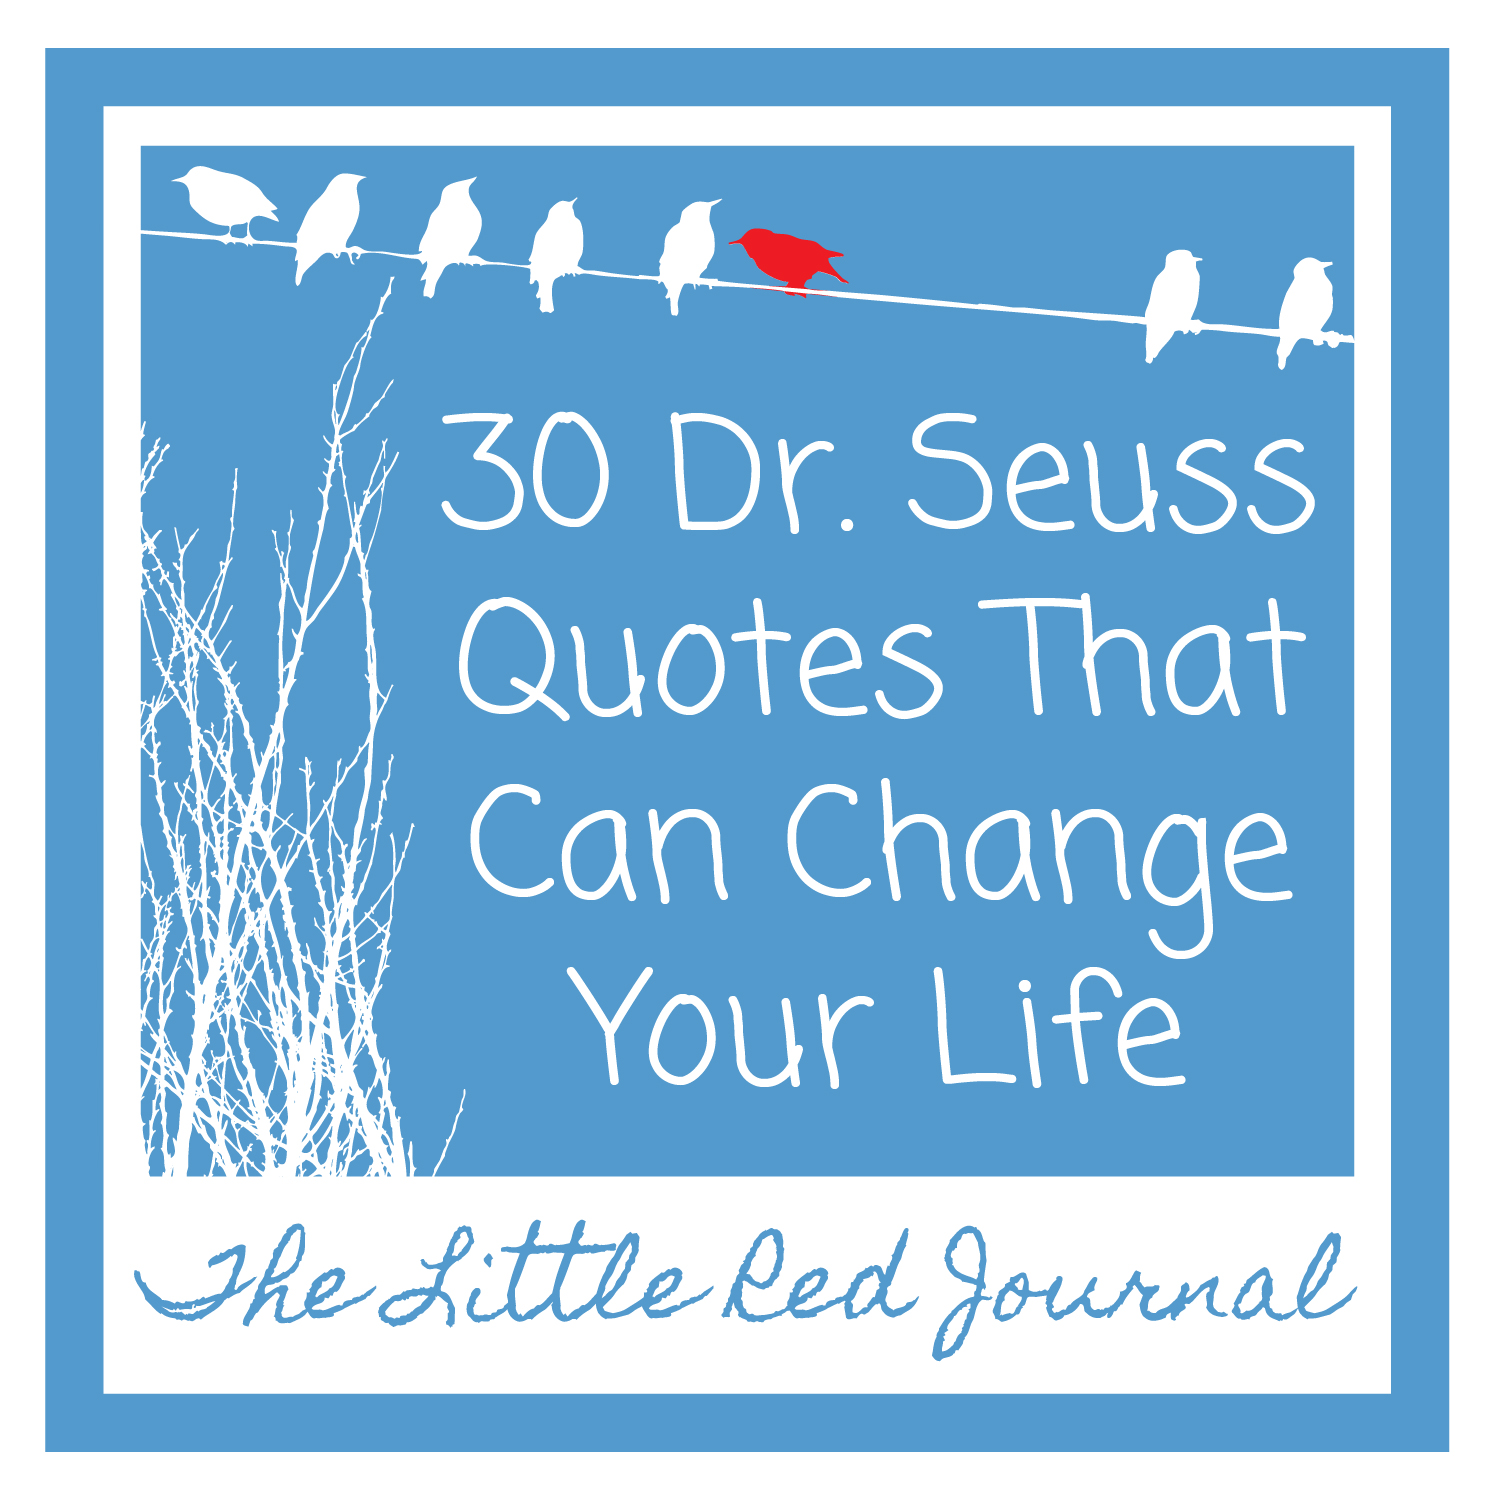 Inspirational Quotes On Life: Dr Seuss Quotes About Life. QuotesGram